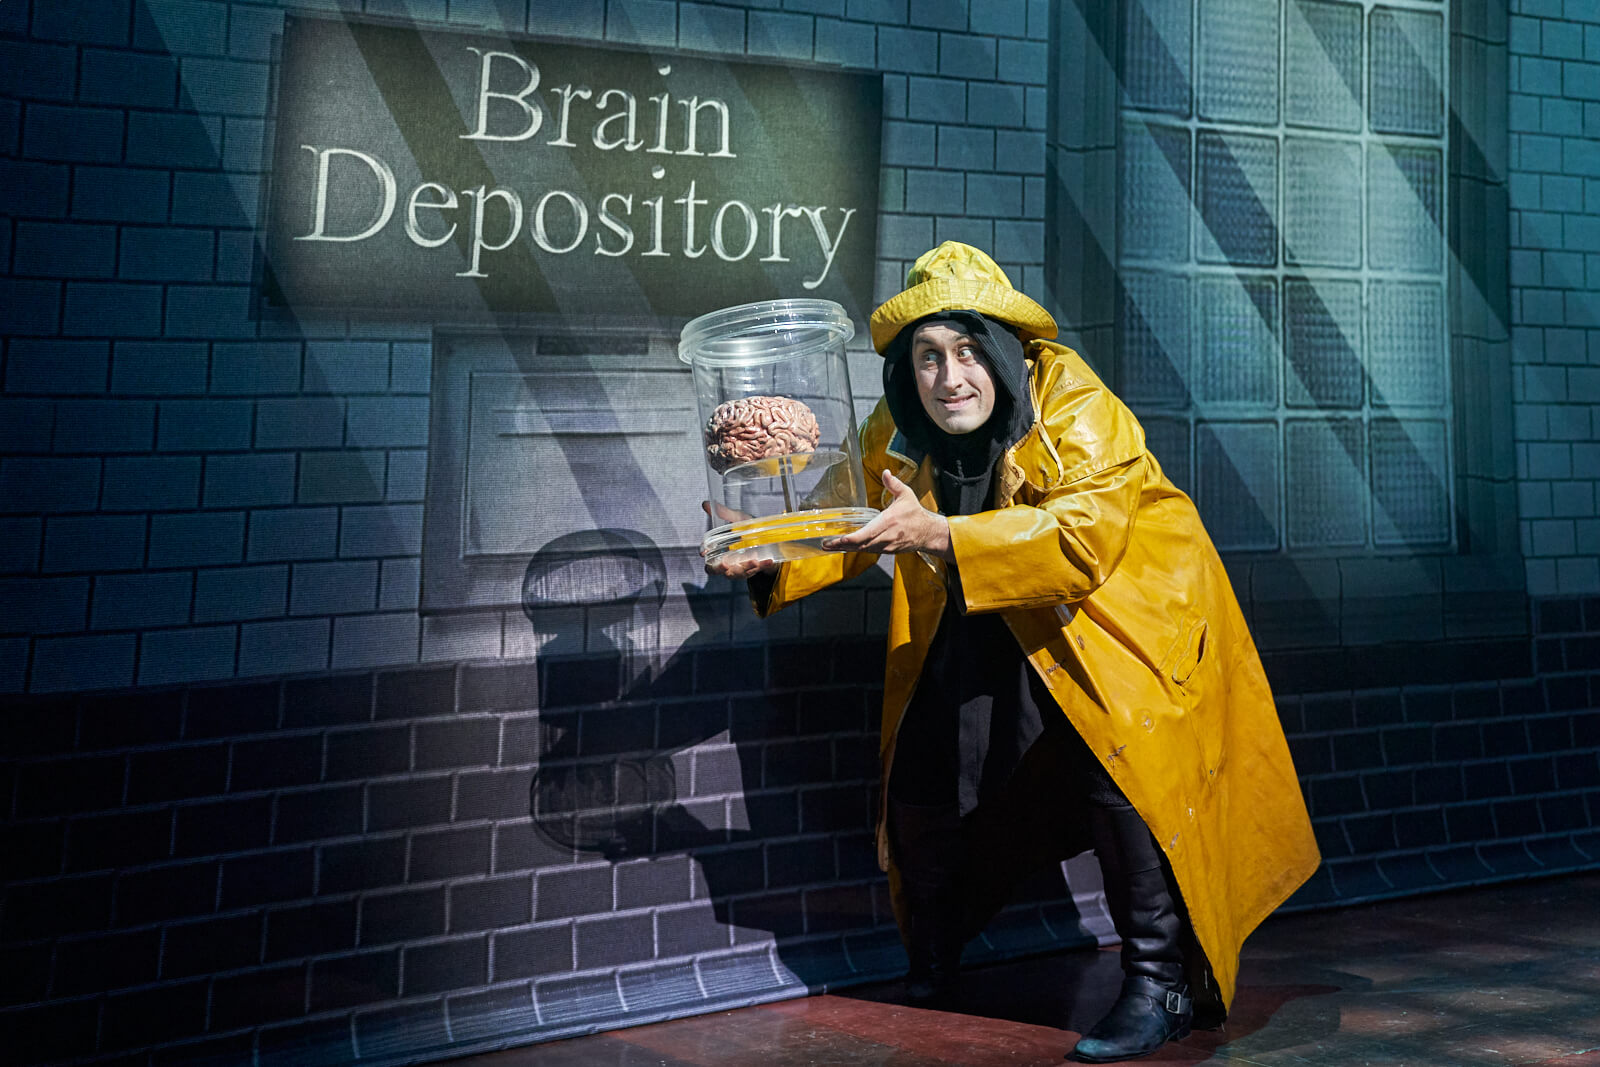 Igor (Ross Noble) in a yellow raincoat stealing a brain from a brain depository in Young Frankenstein (West End).